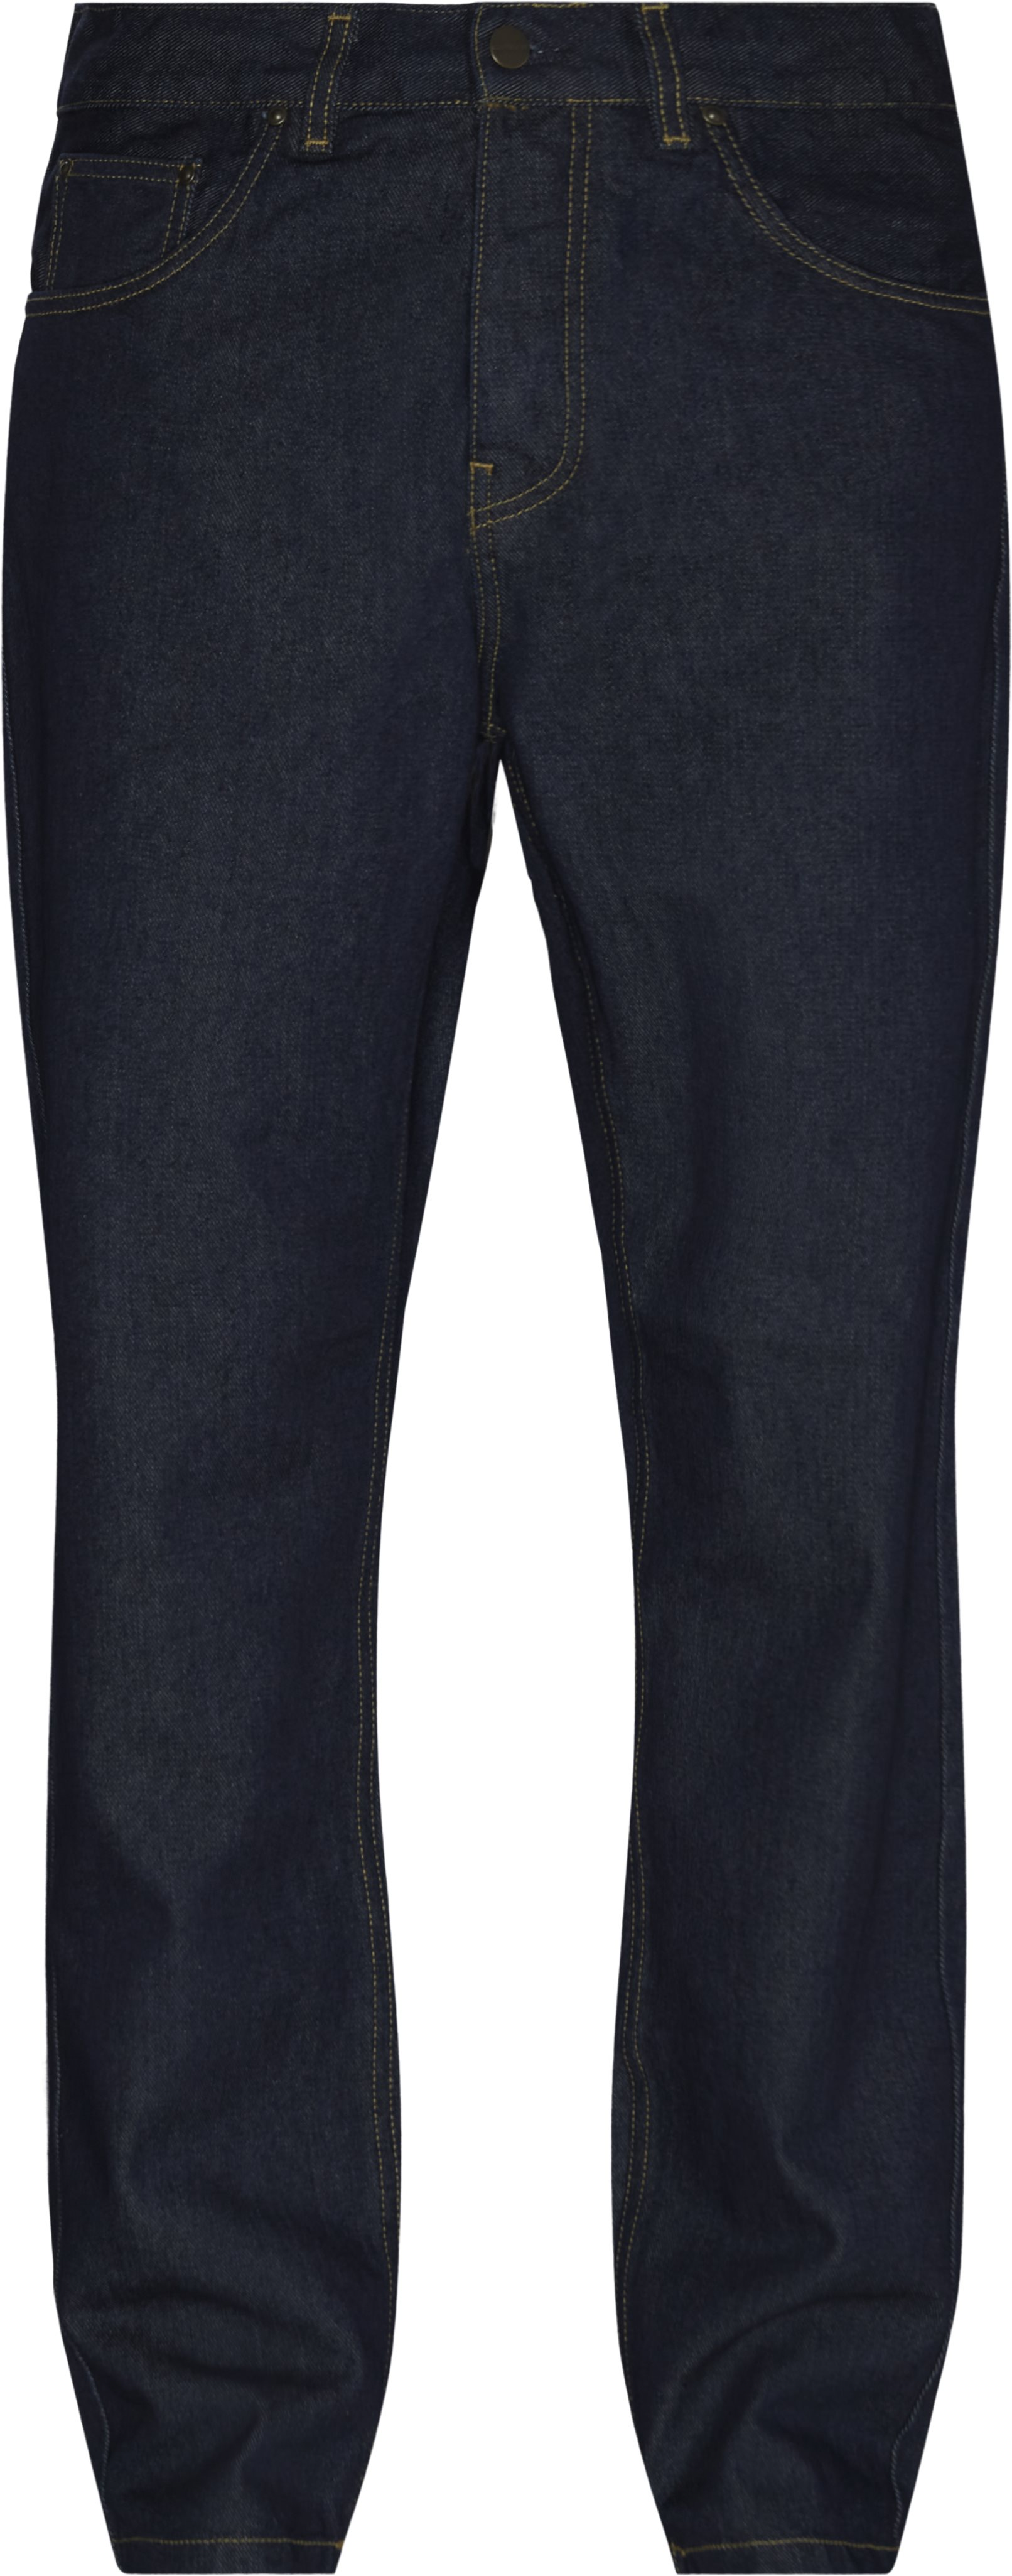 Newel Pant I024905 - Jeans - Relaxed fit - Blå